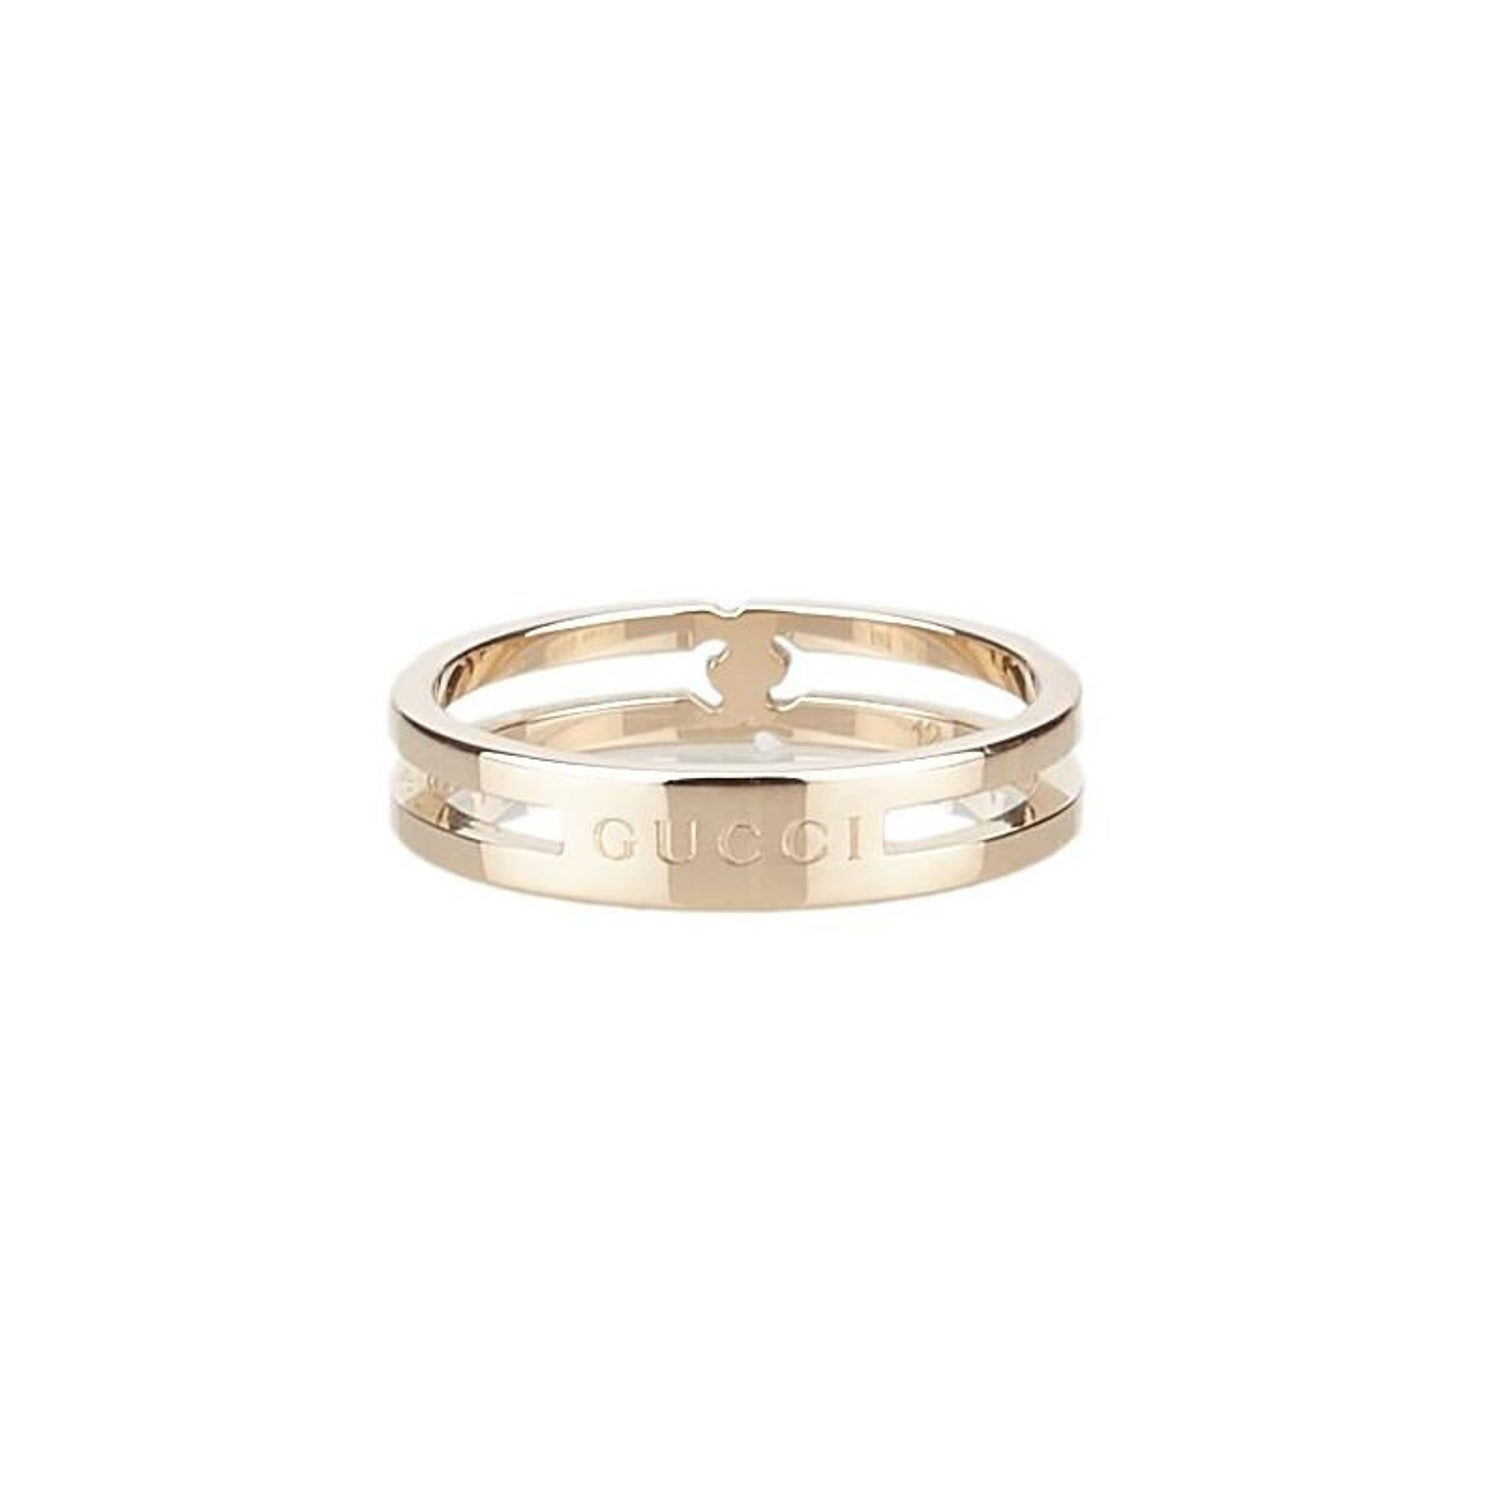 a3ba9c285 Gucci Infinity Rose Gold Ring Size 52 For Sale at 1stdibs